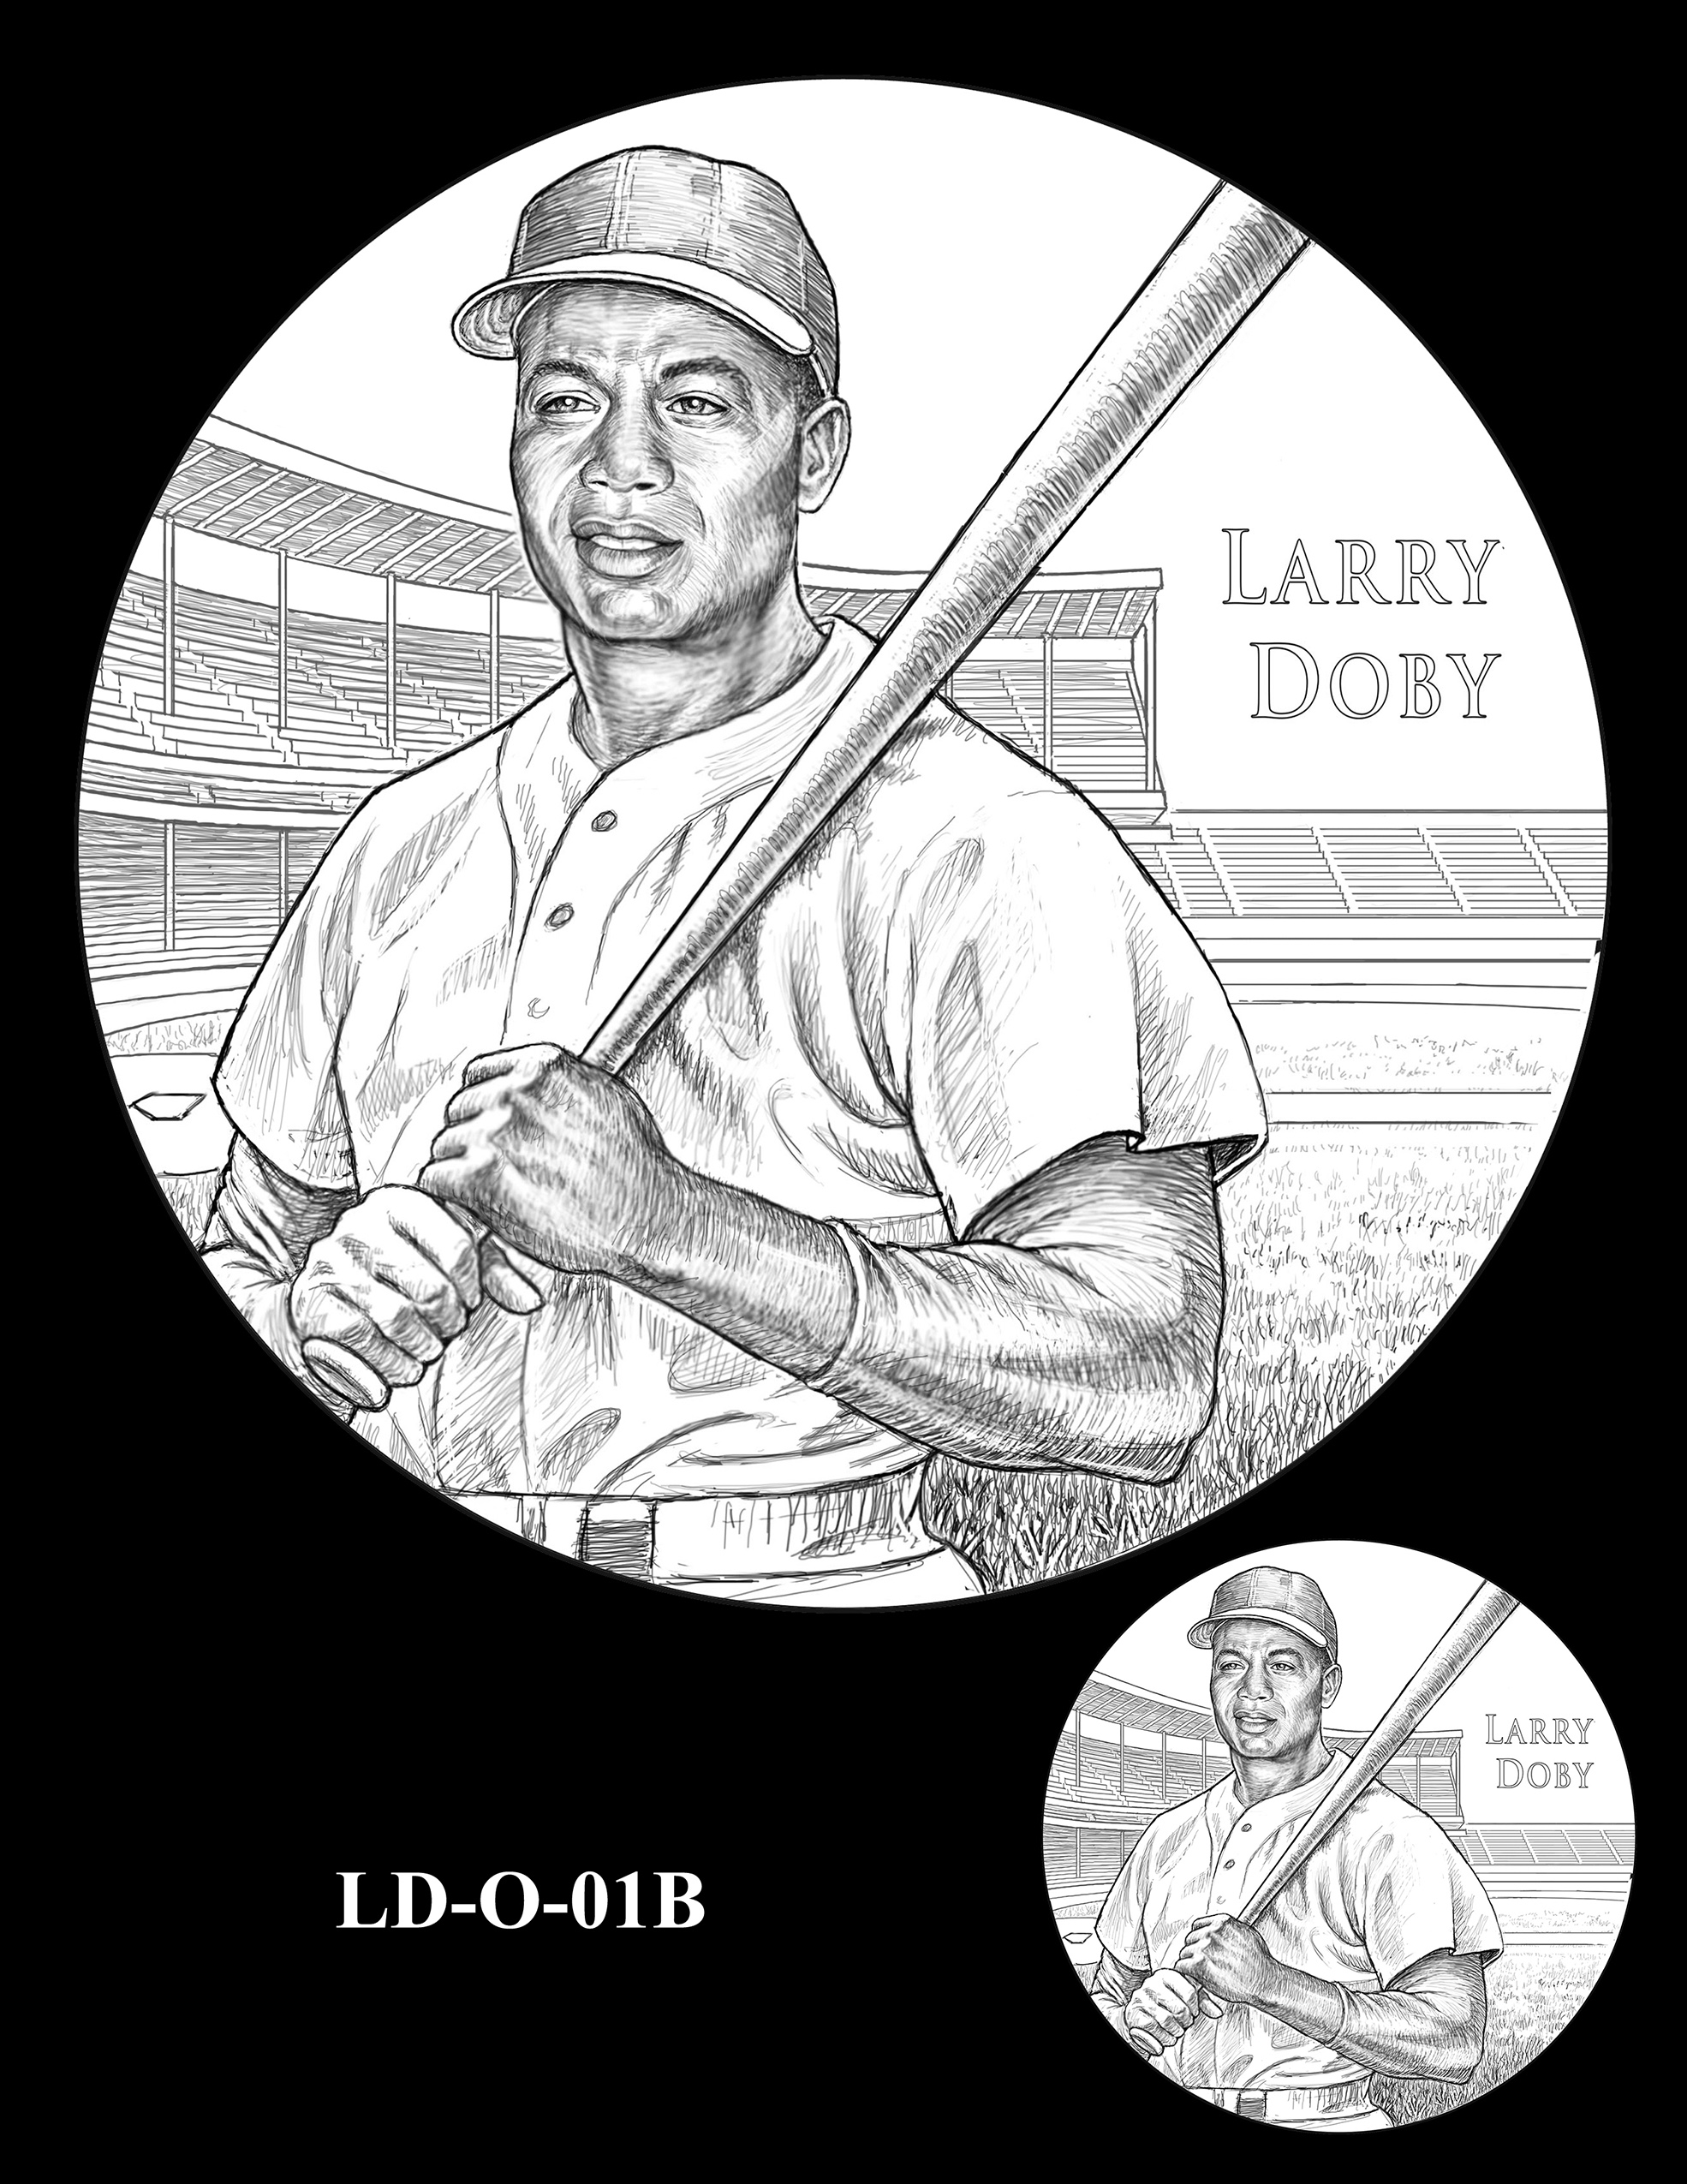 LD-O-01B -- Larry Doby Congressional Gold Medal